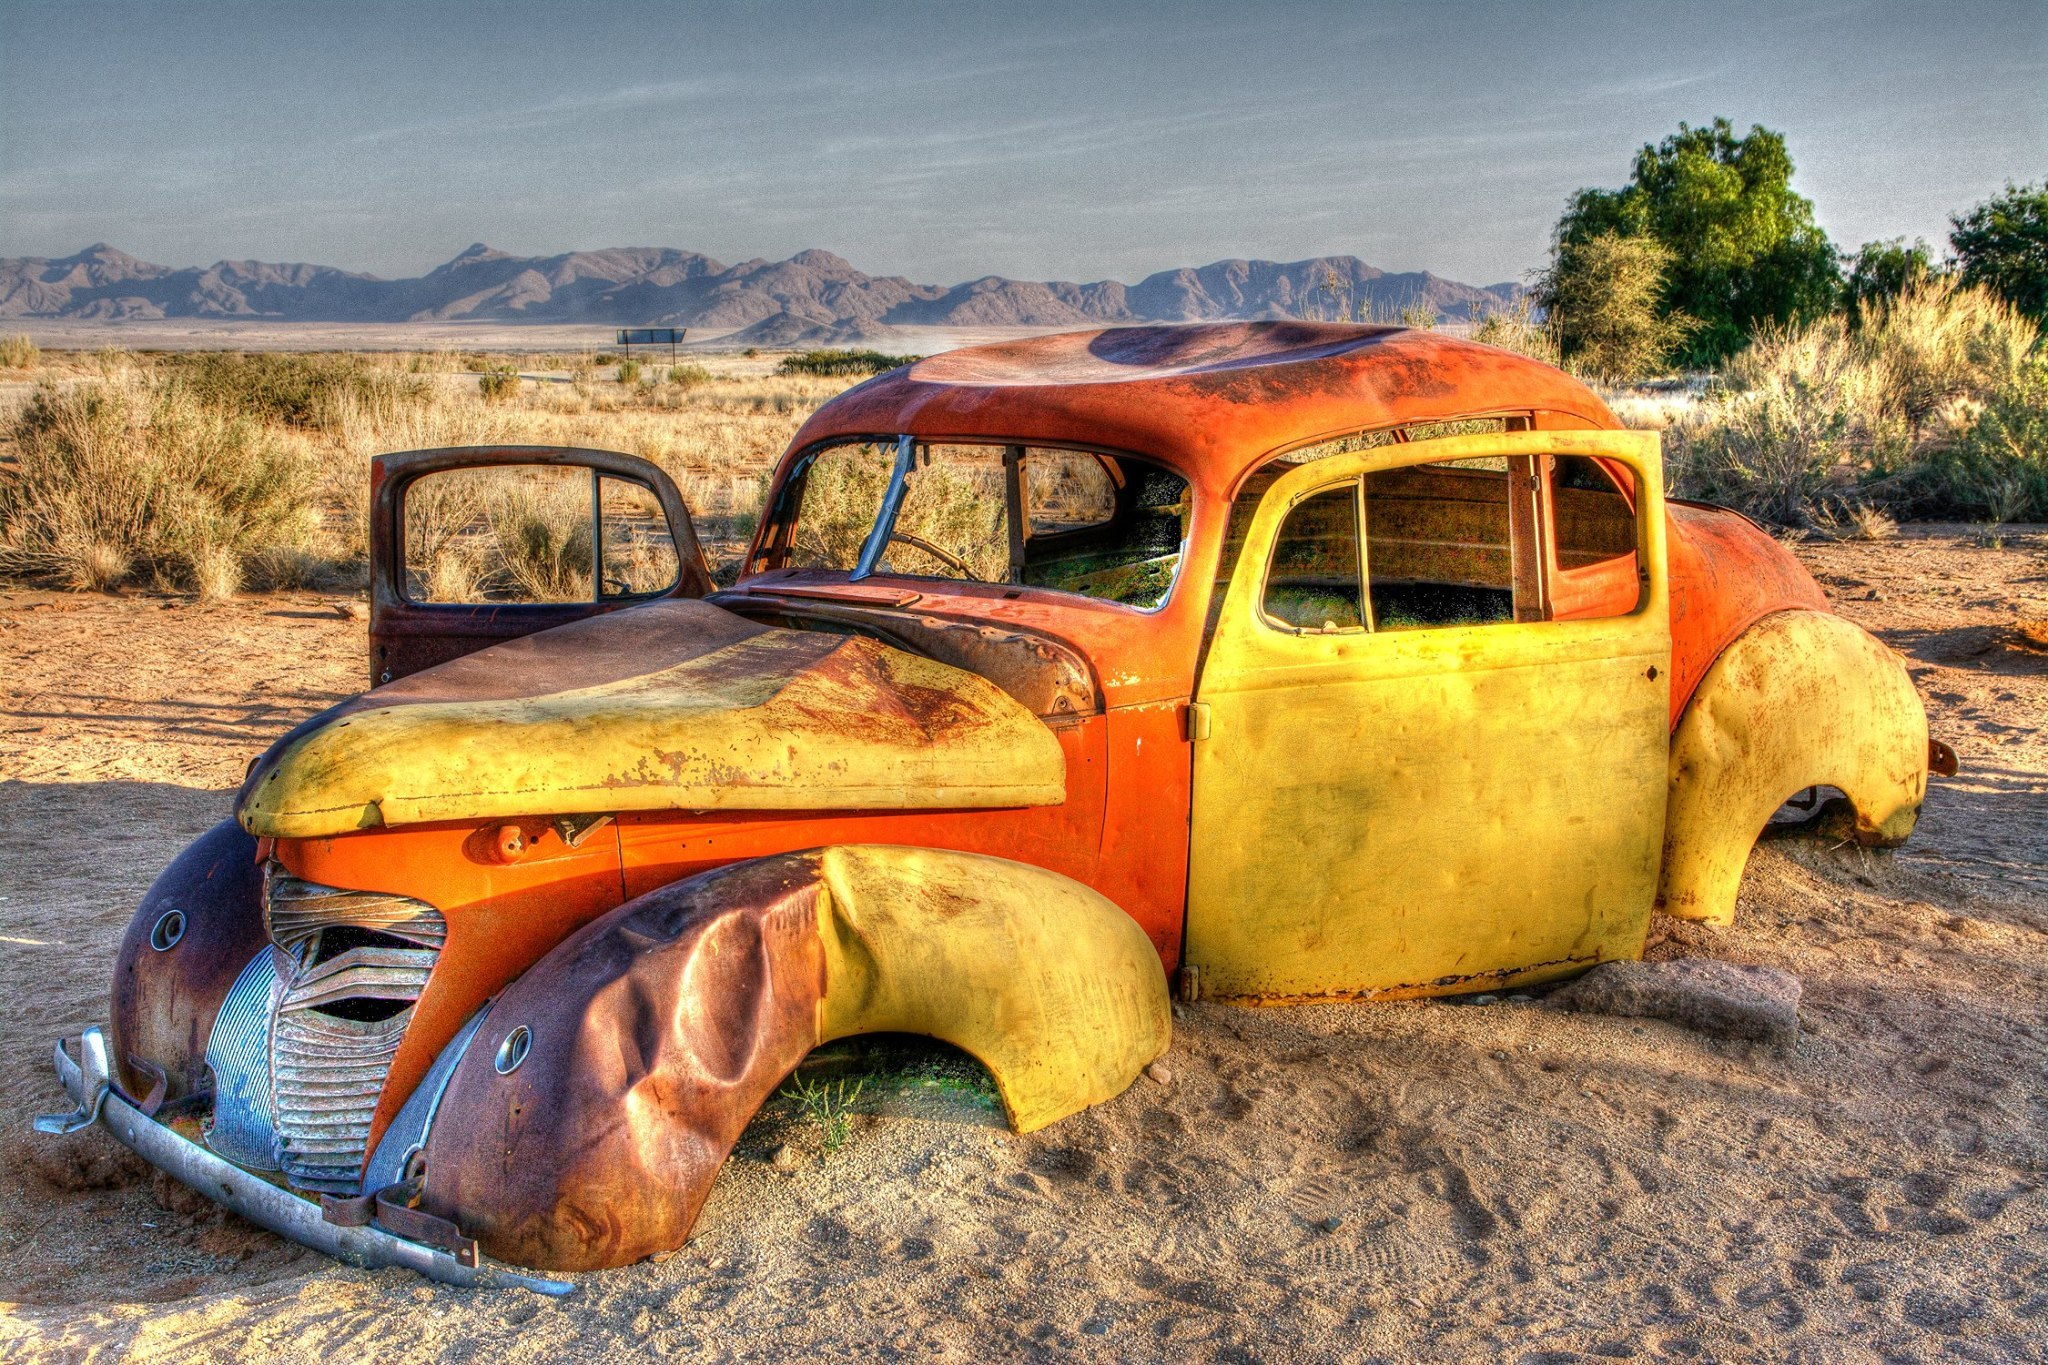 FORGOTTEN: An abandoned car Wendy Meagher came across in Solitaire, Namibia